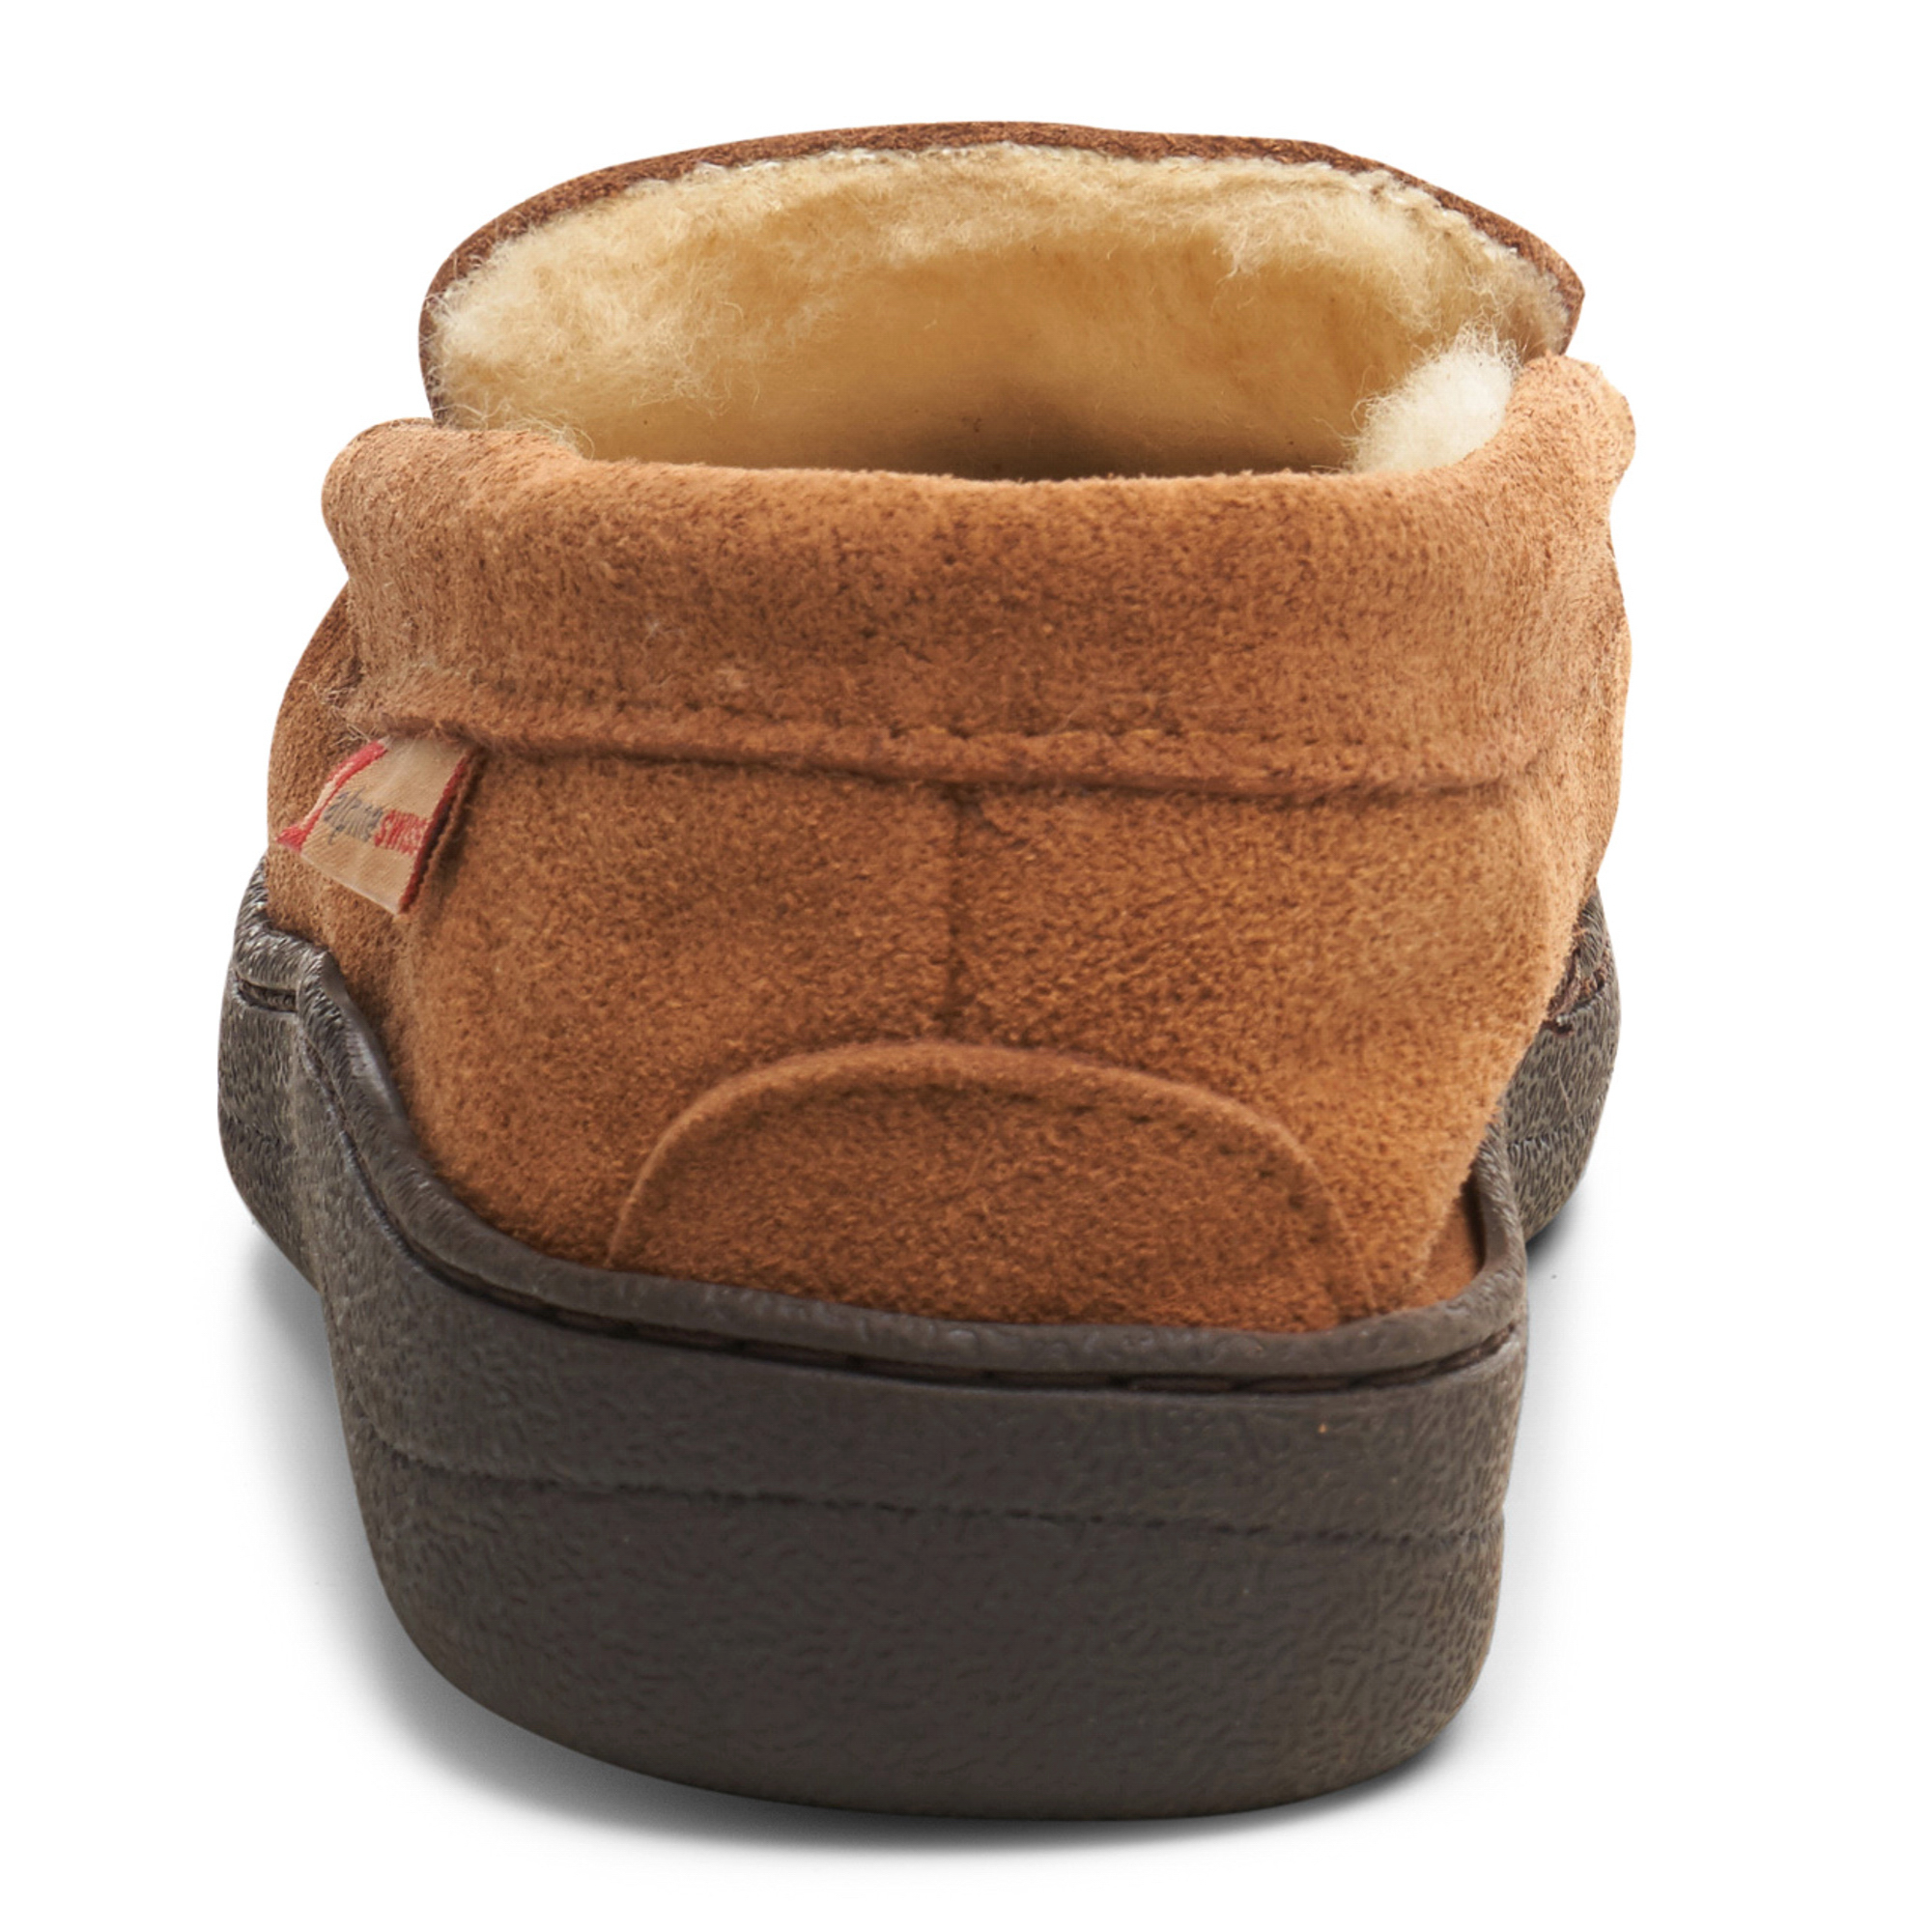 Alpine-Swiss-Yukon-Mens-Suede-Shearling-Moccasin-Slippers-Moc-Toe-Slip-On-Shoes thumbnail 23